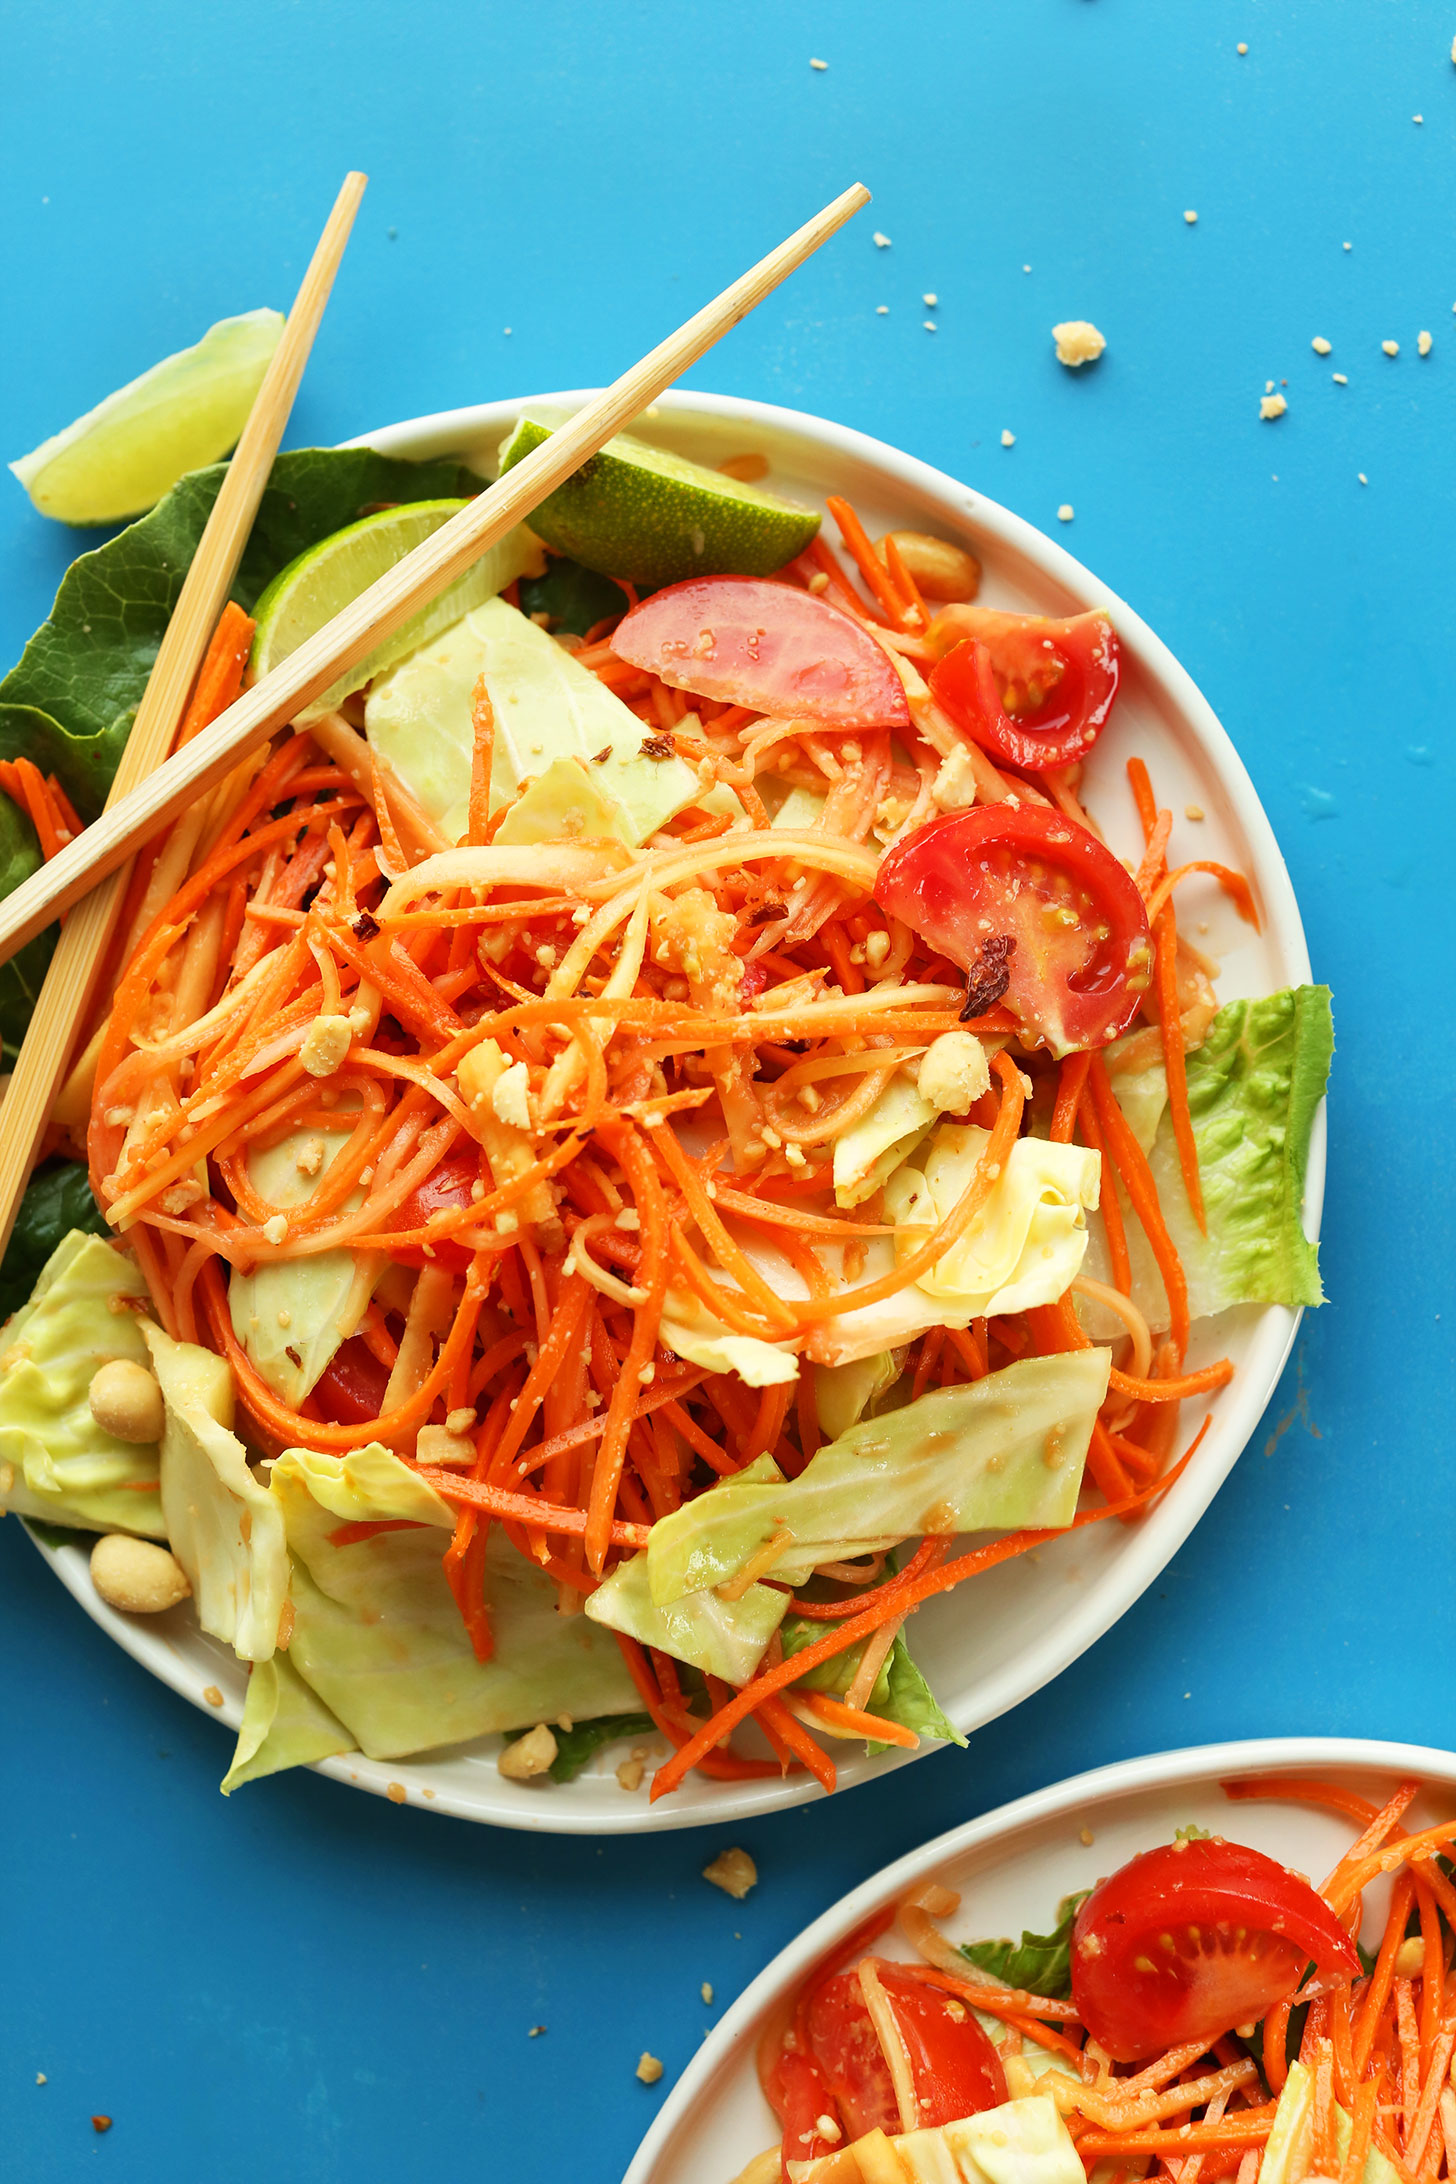 Plate of our gluten-free vegan Thai Papaya Salad with sweet and spicy sauce